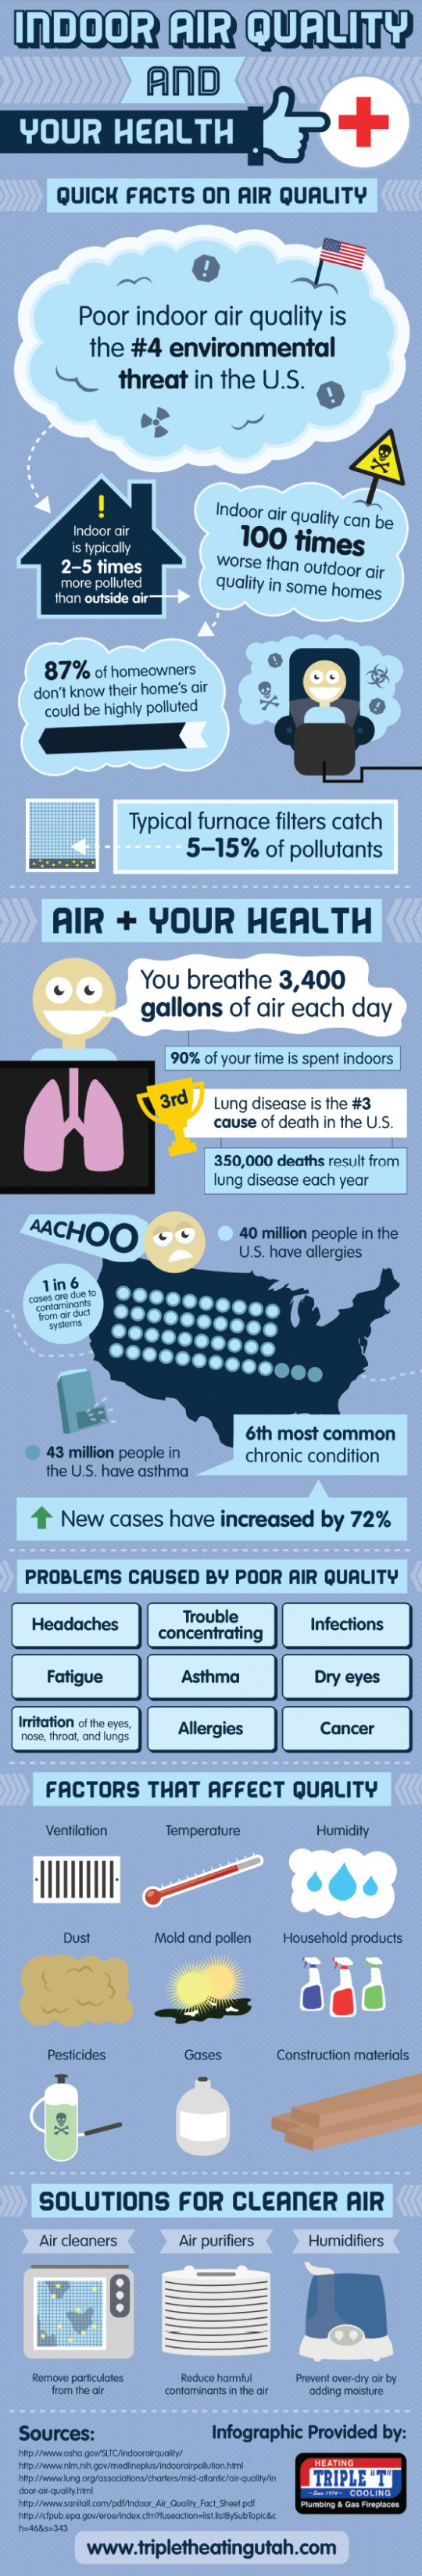 indoor-air-quality-infographic